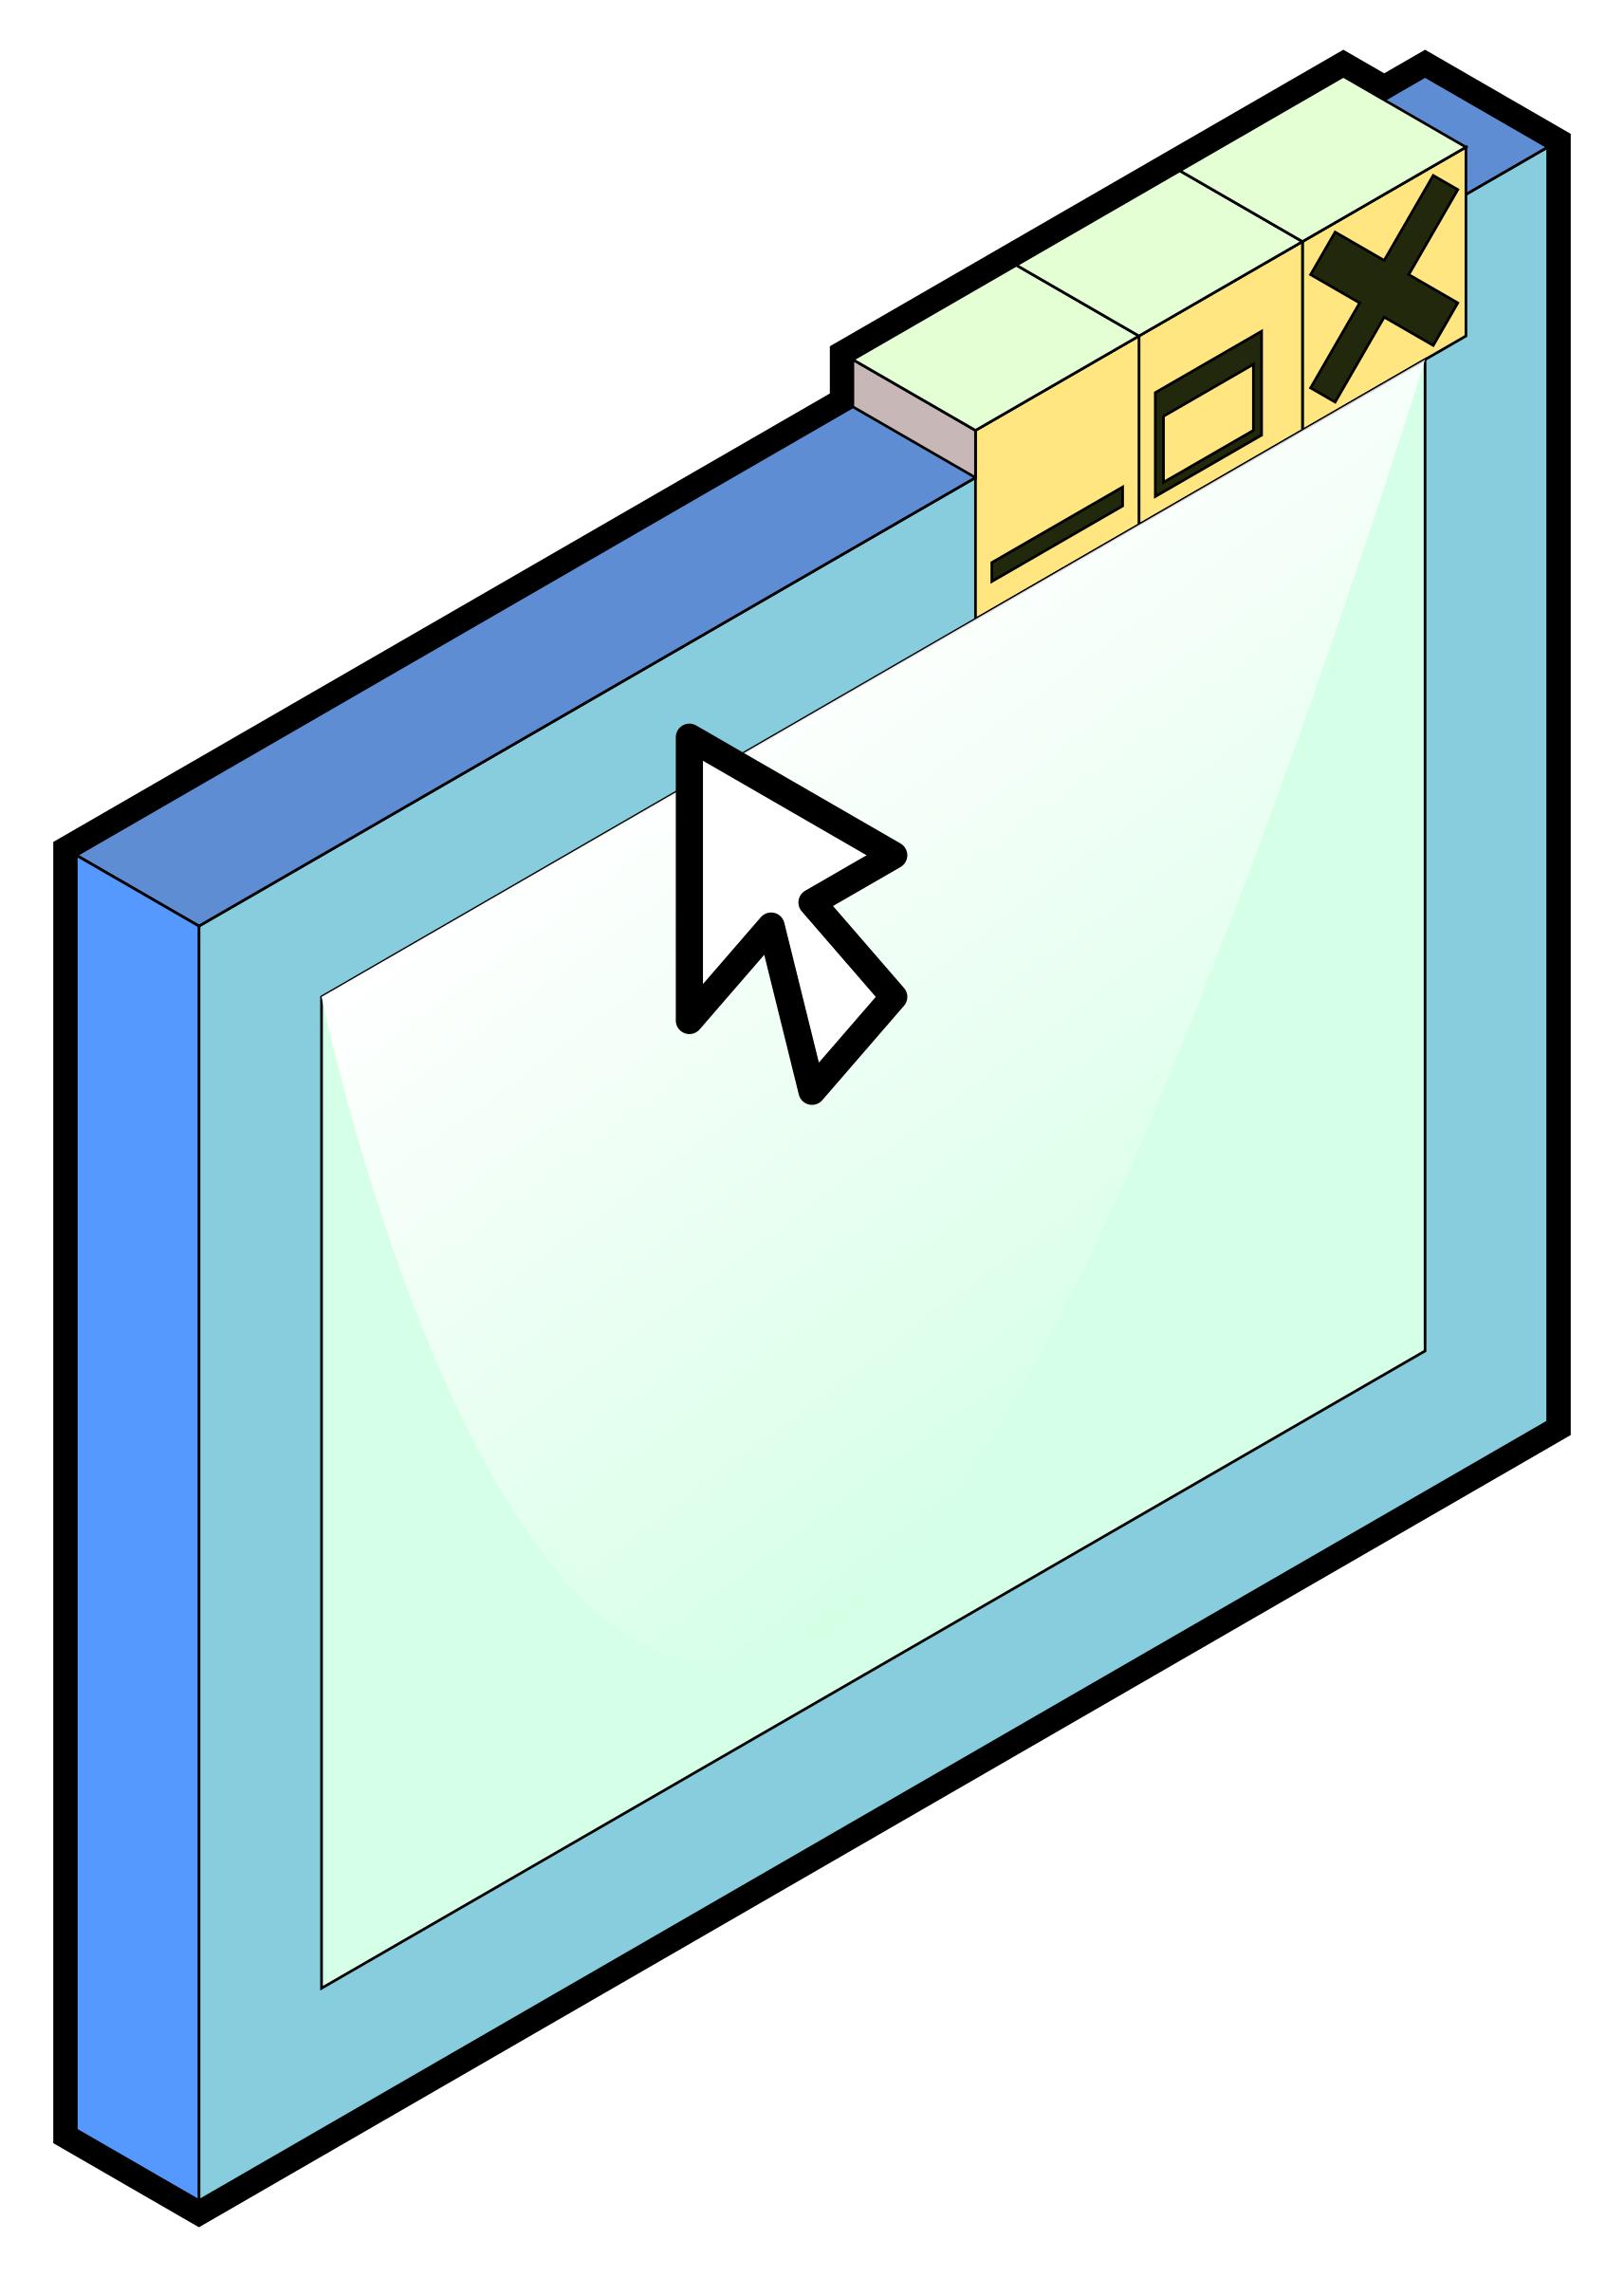 Isometric generic software window by Fabuio